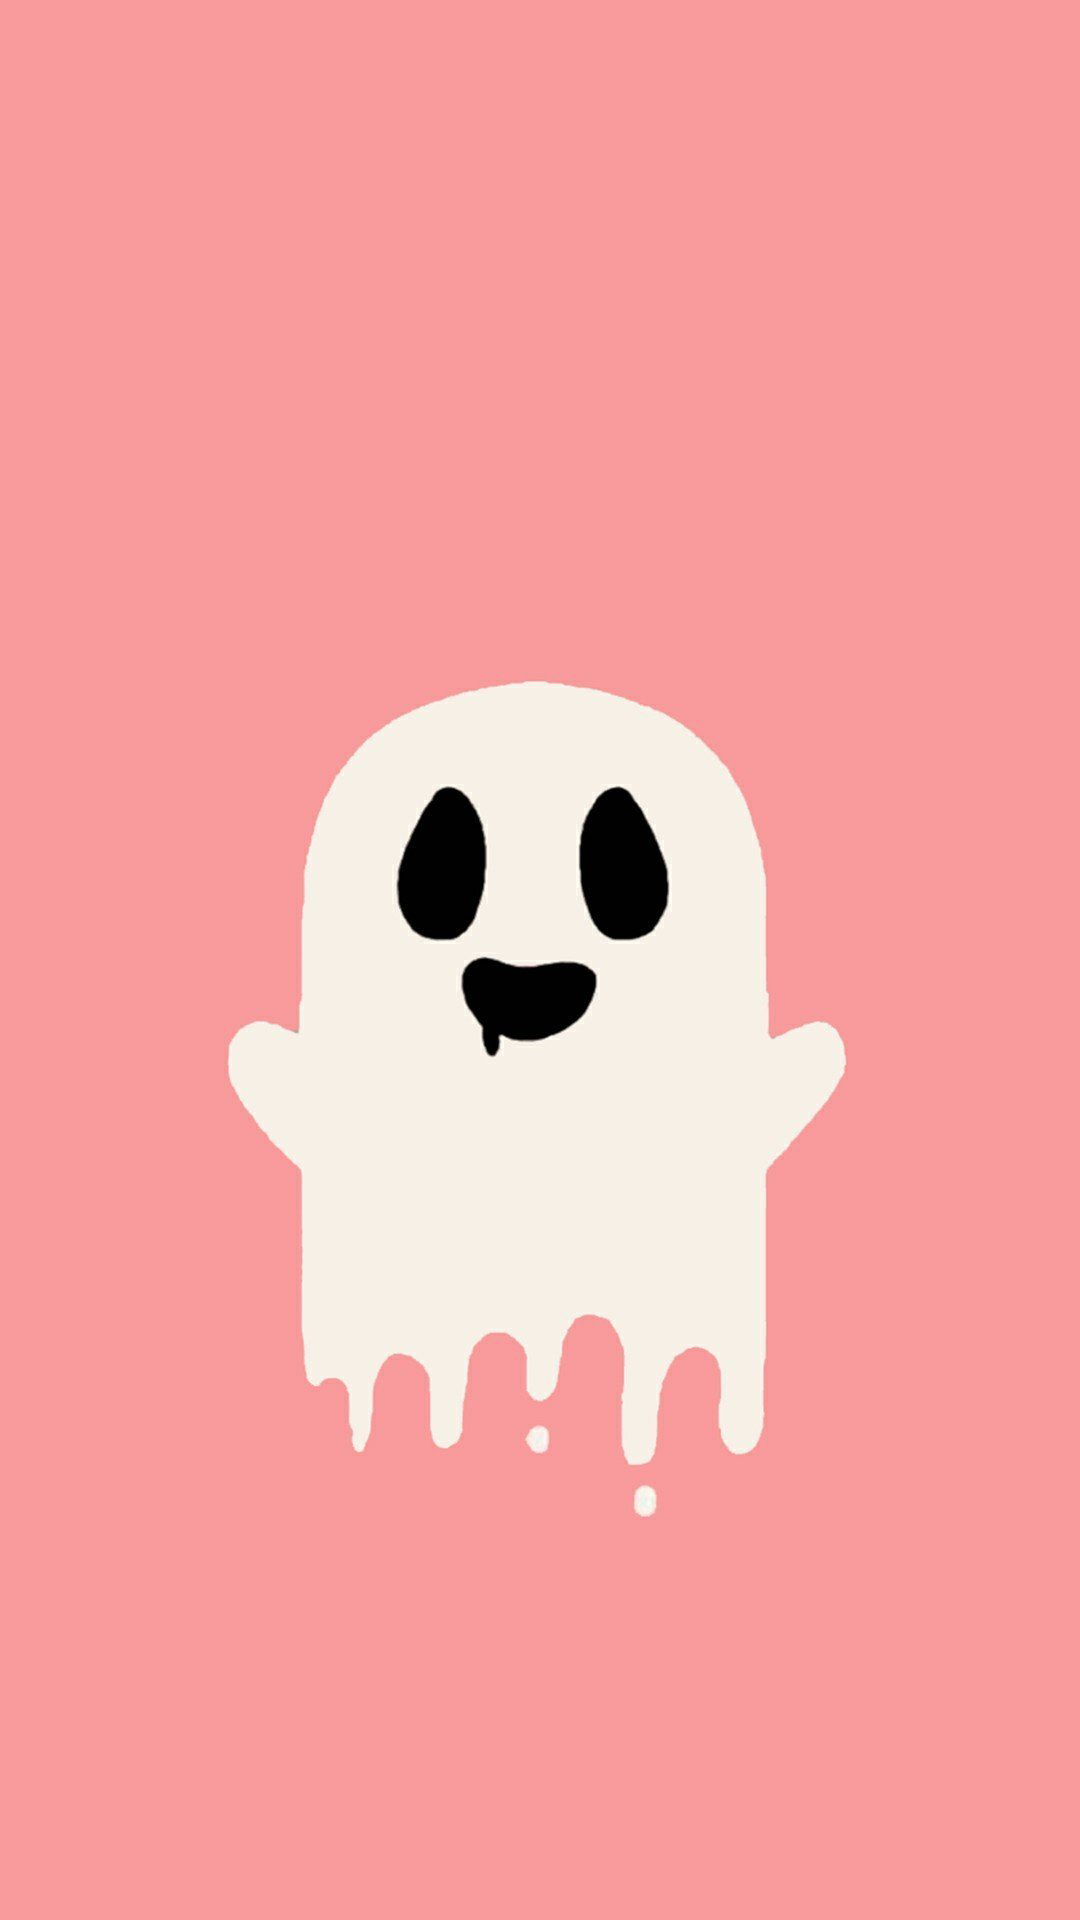 Ghost Memes Wallapapers Free Download for Mobile